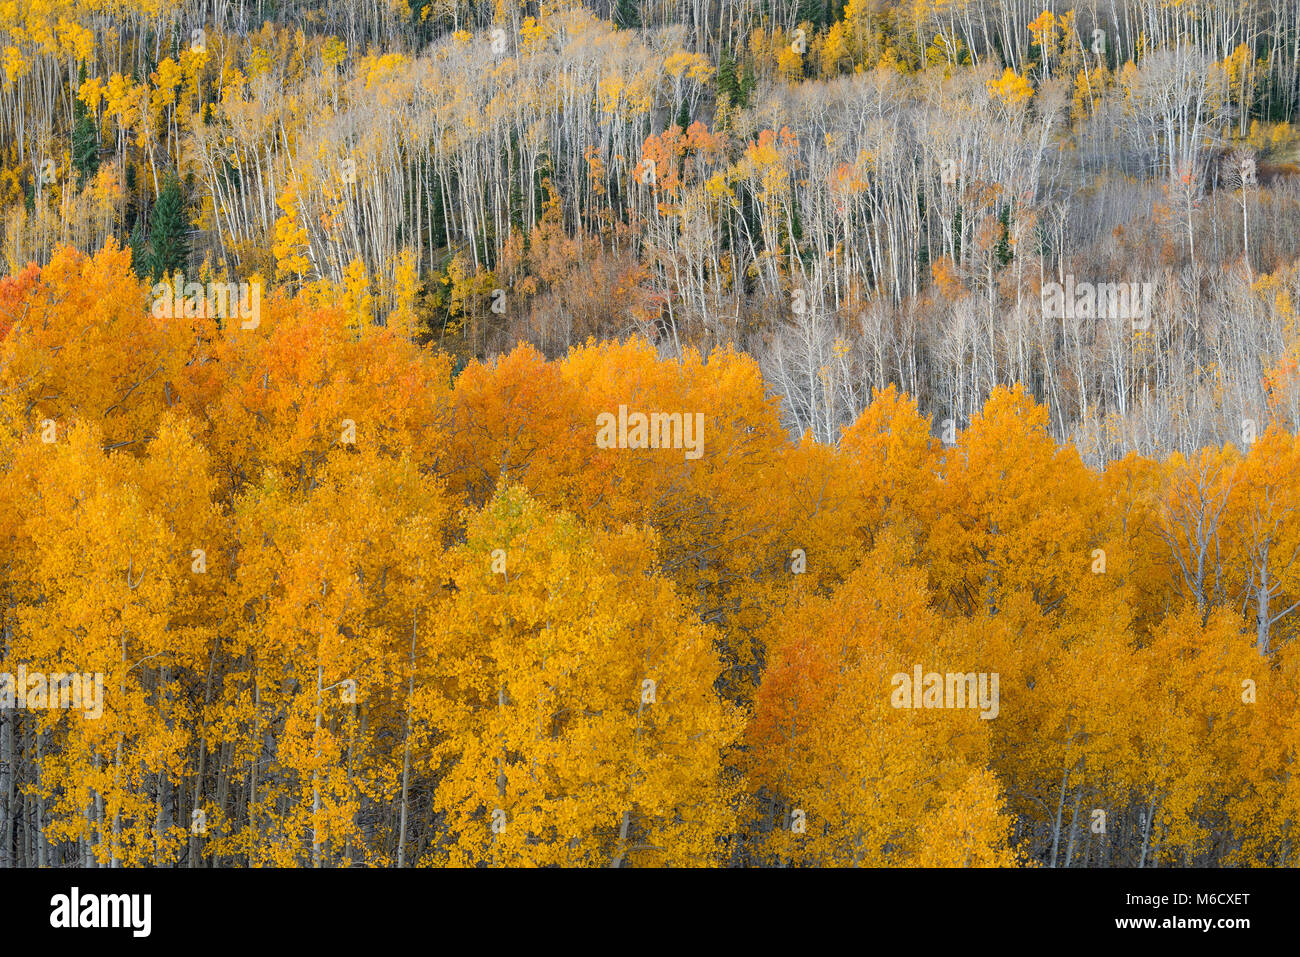 Aspen, Boulder Mountain, Dixie National Forest, Utah - Stock Image